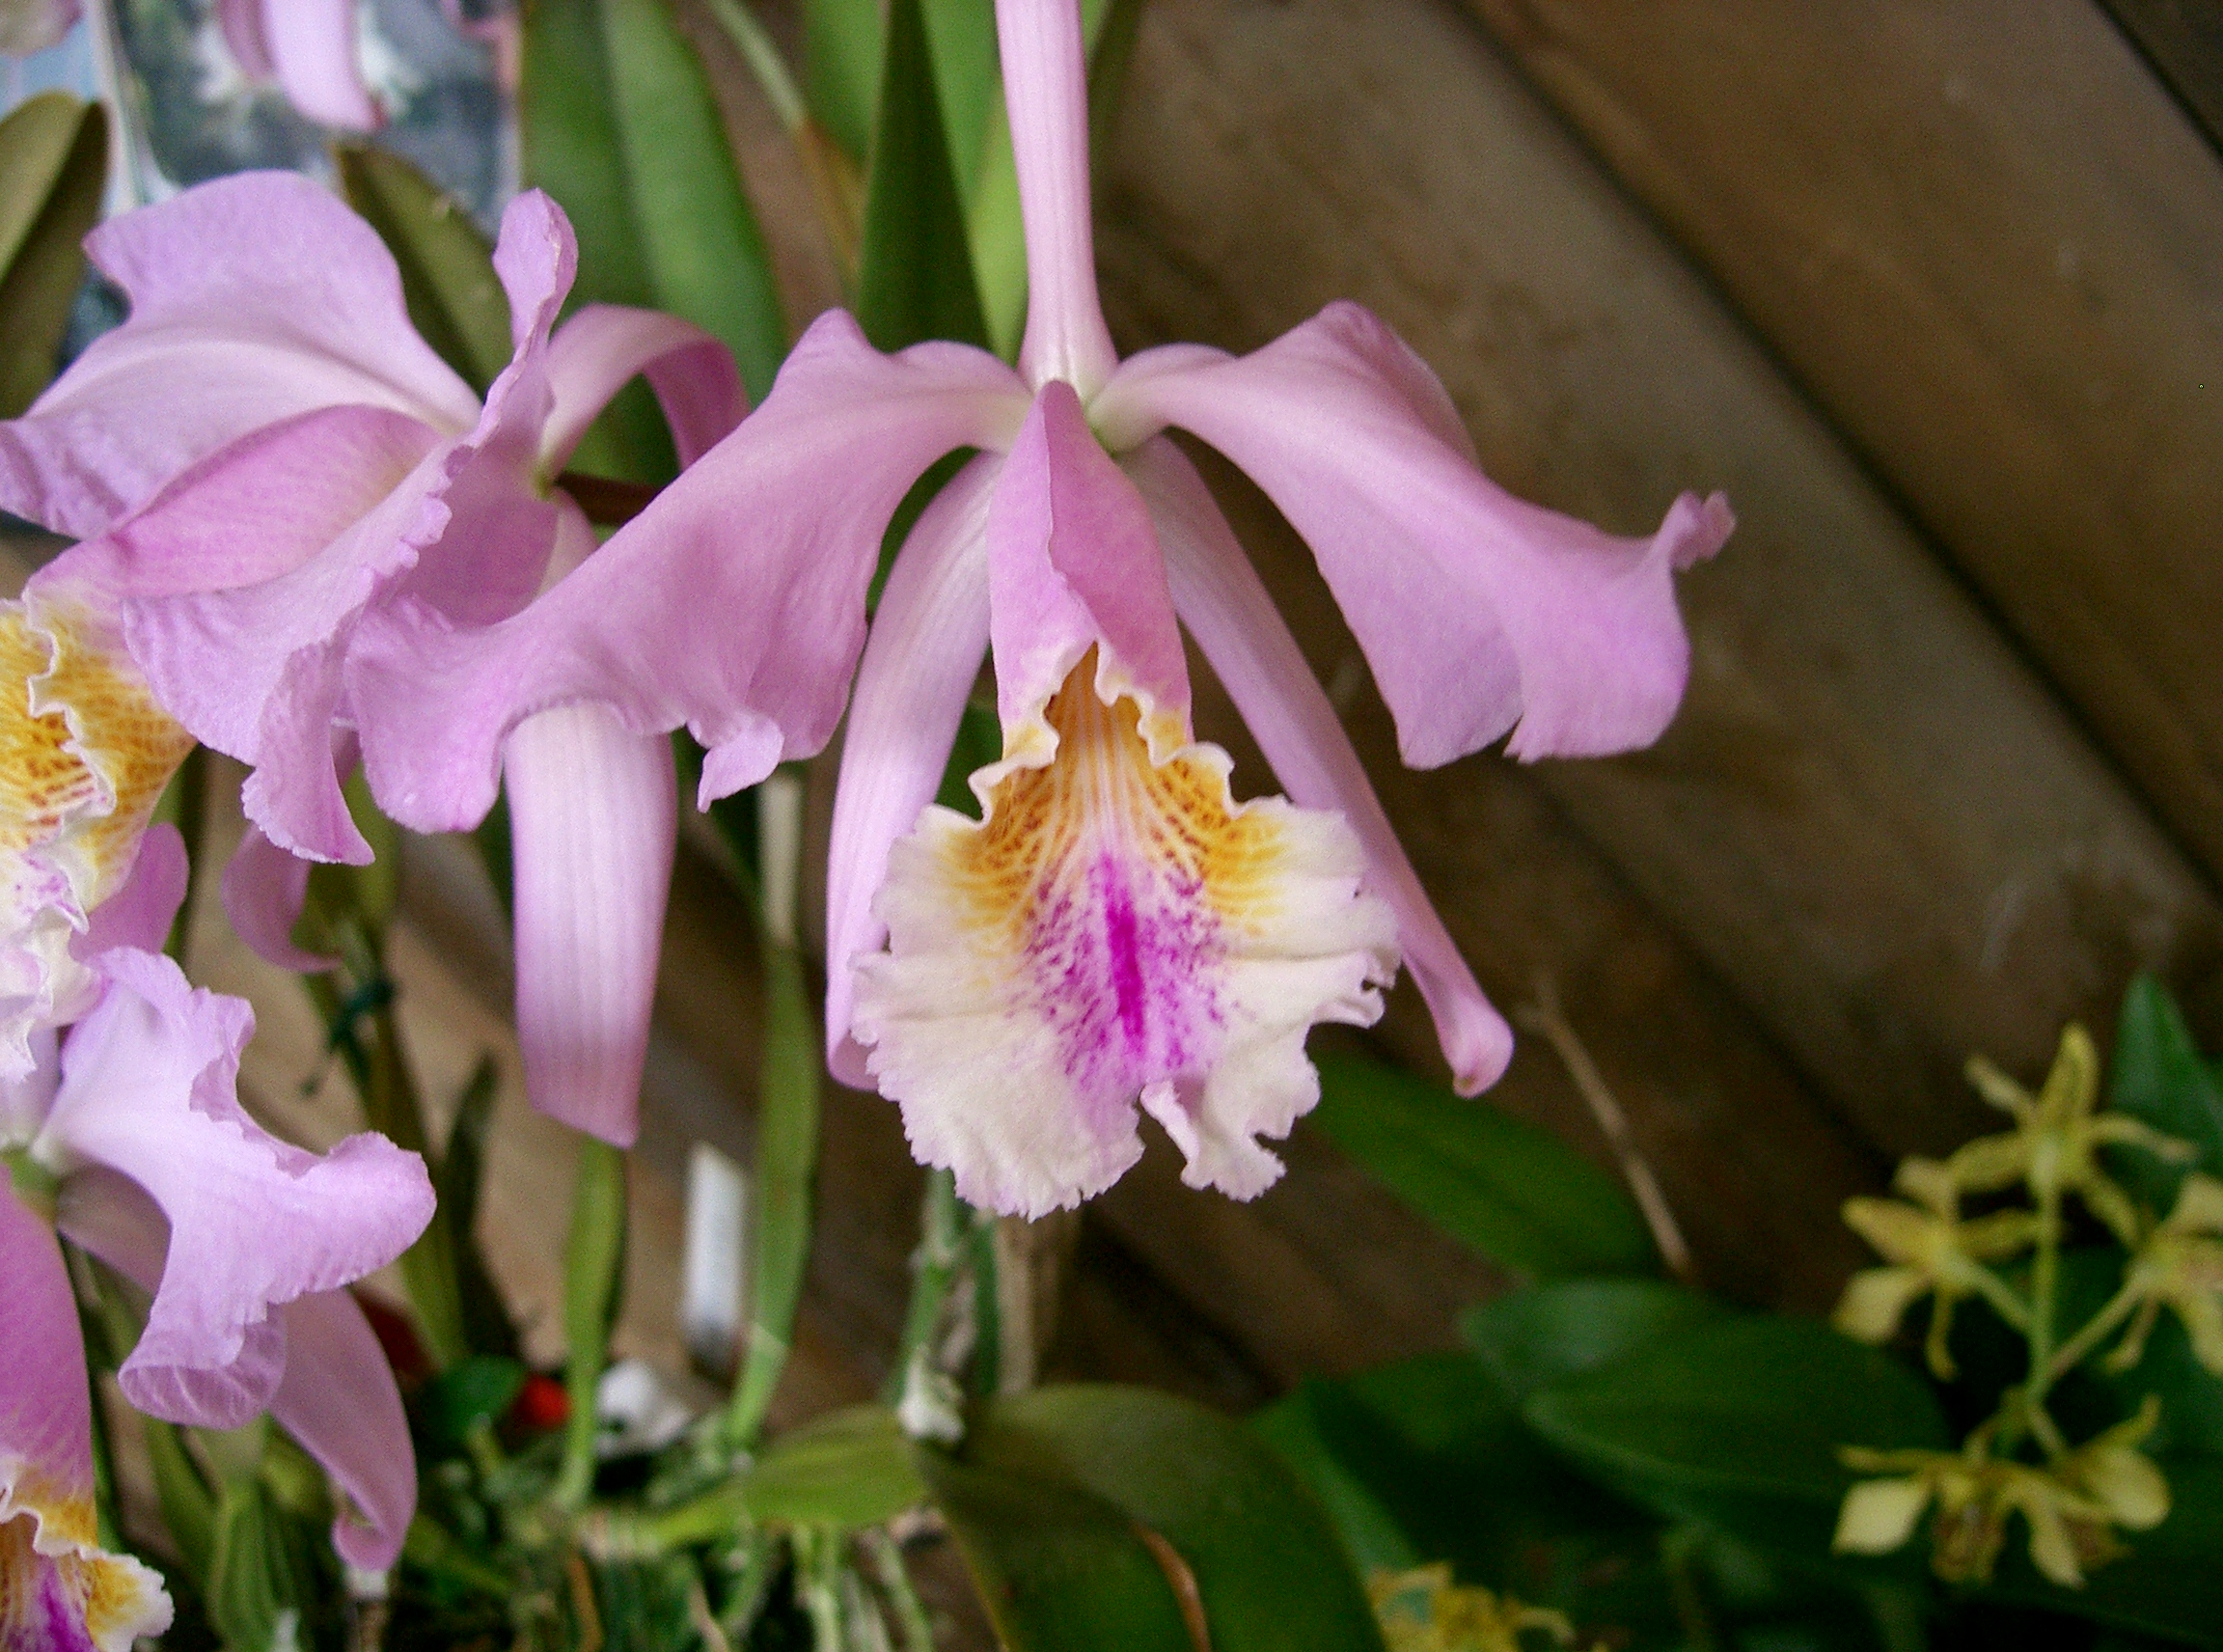 http://upload.wikimedia.org/wikipedia/commons/d/de/Cattleya_mossiae2.jpg